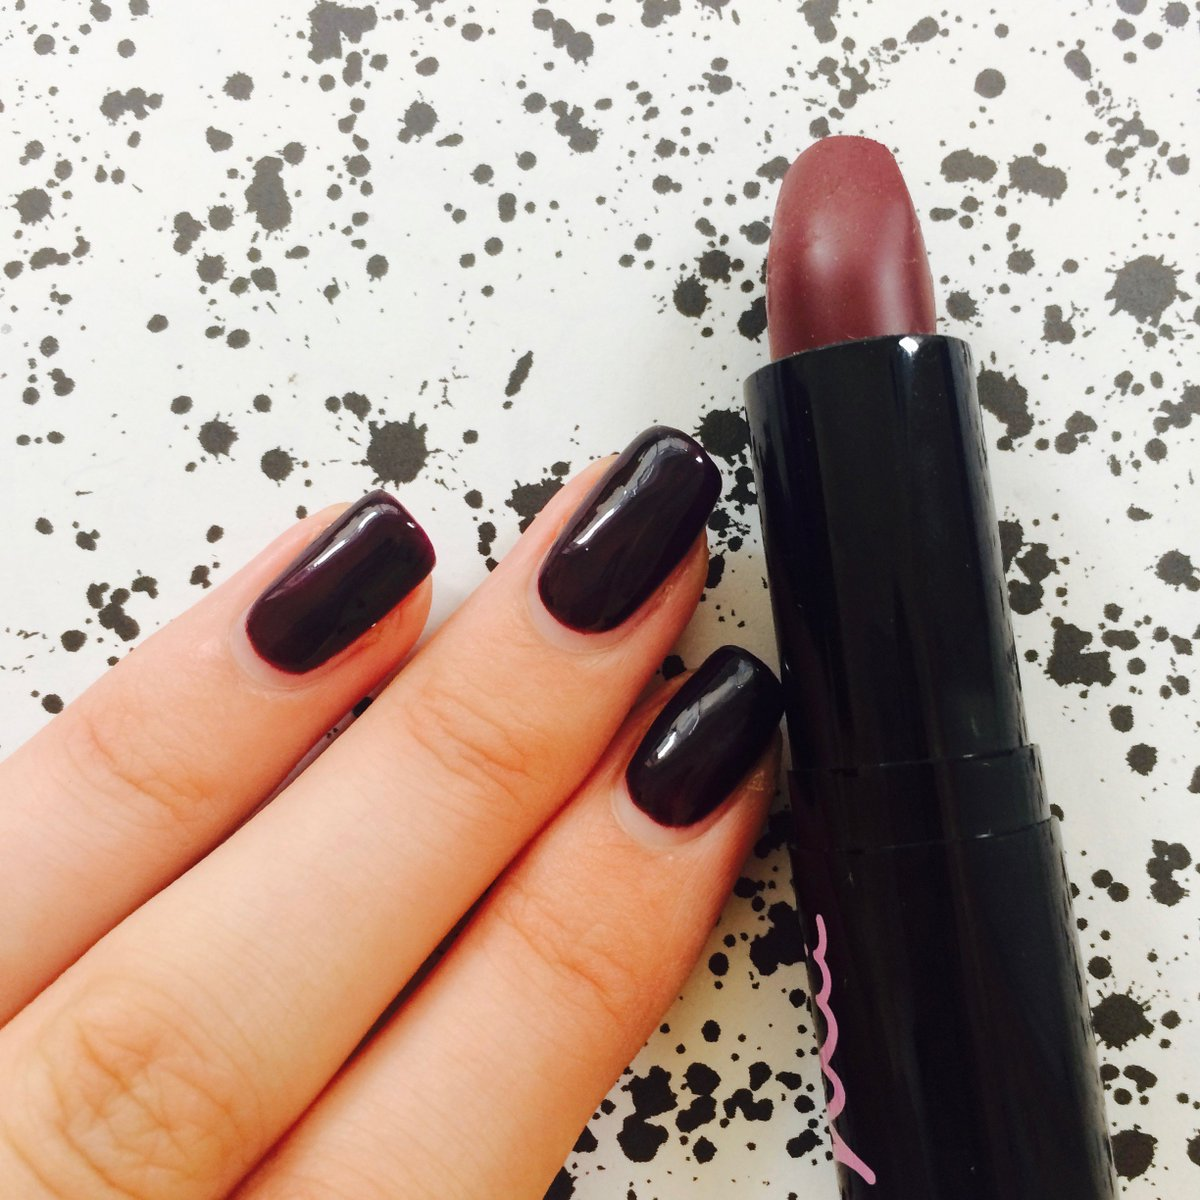 Nails and lips, nails and lips, our favourite at the moment! #nailbar #cnd @makeuplittlelab<br>http://pic.twitter.com/i5ukkSOqfu